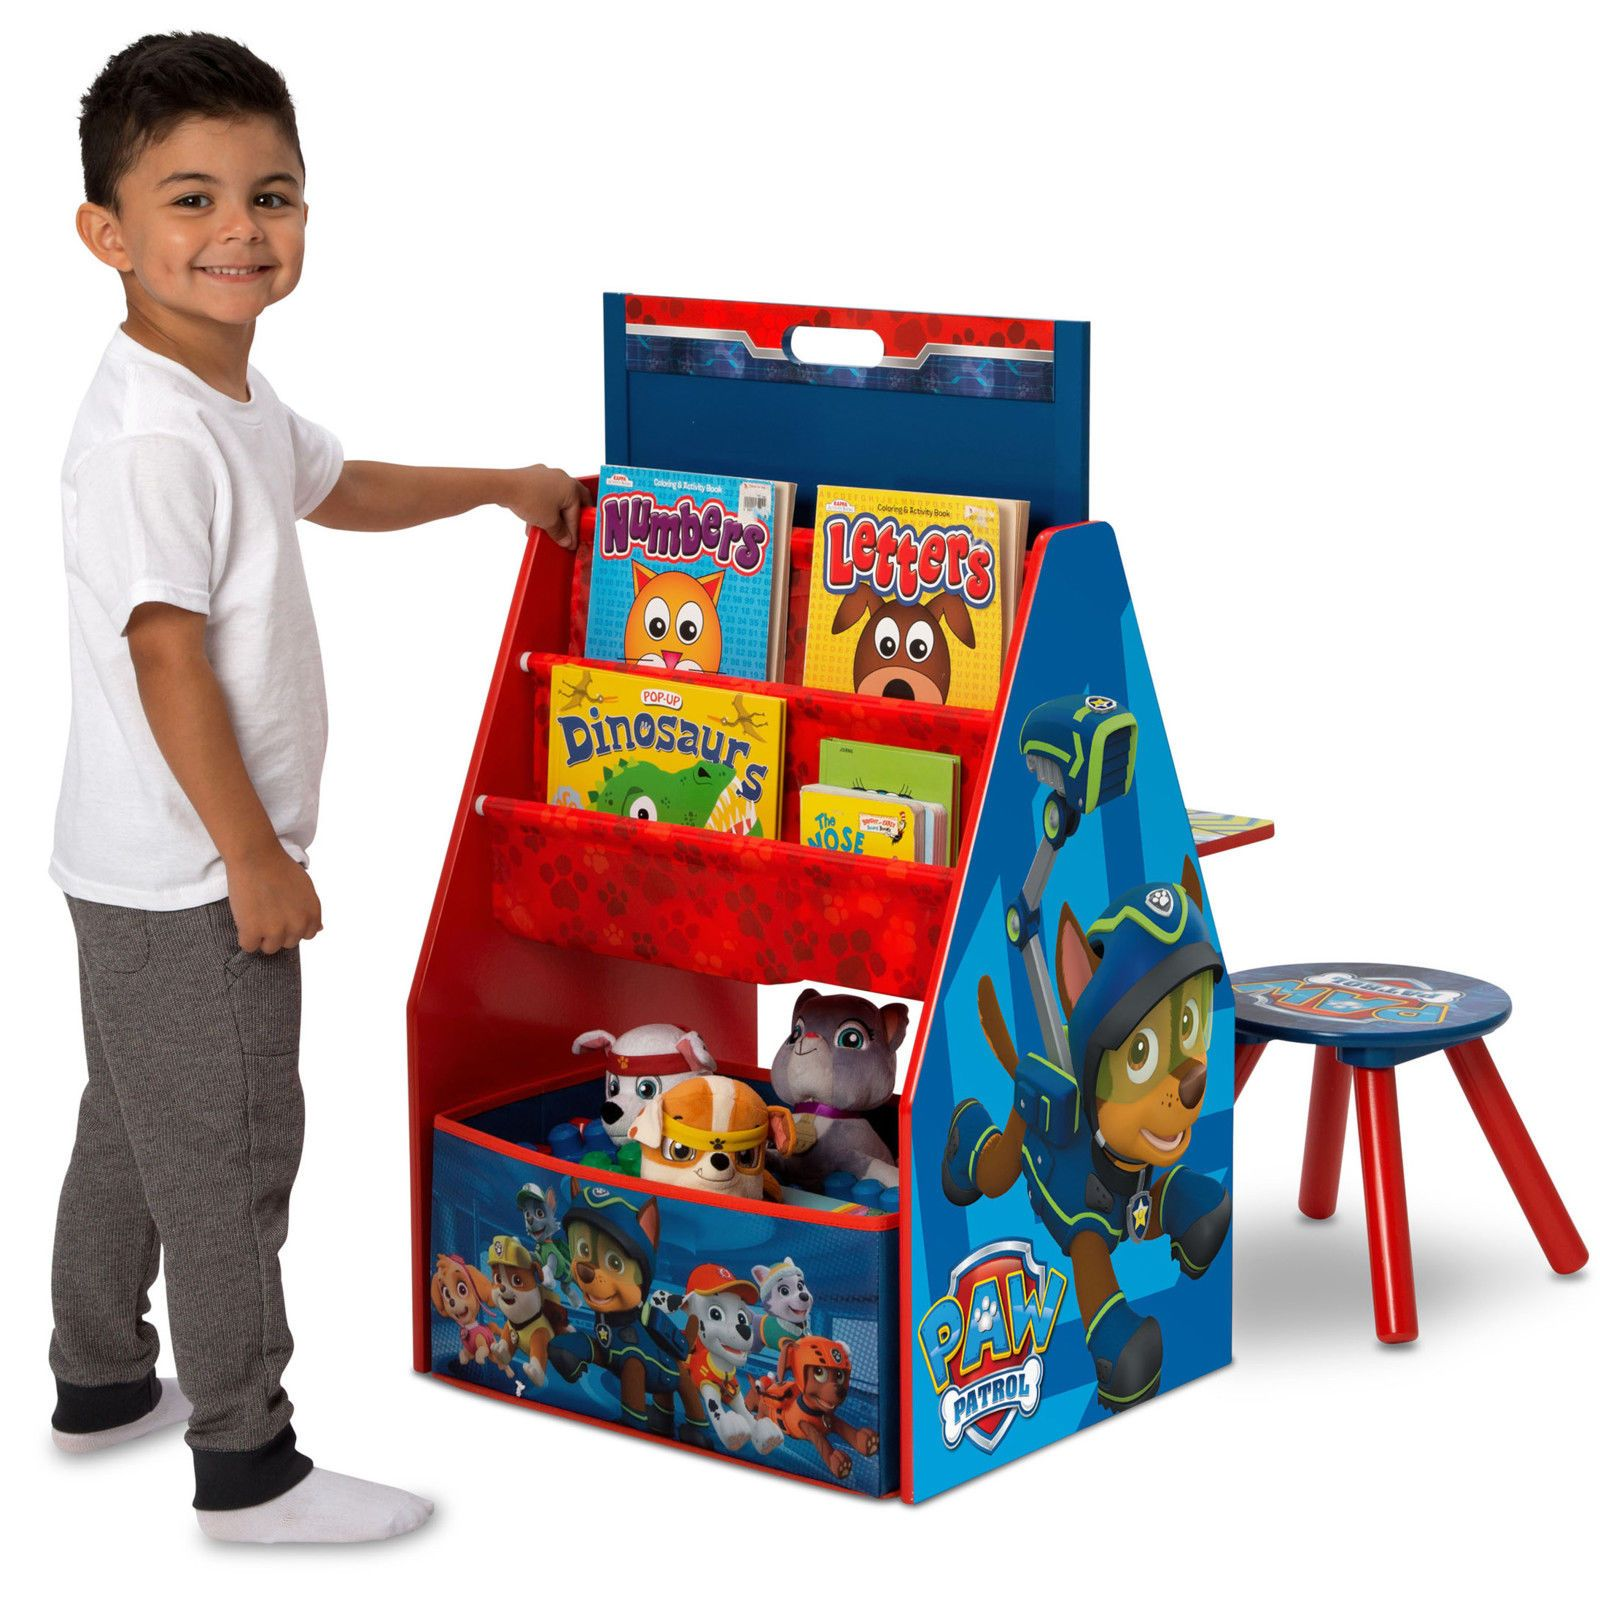 Paw Patrol Toy Organizer Bin Cubby Kids Child Storage Box: Paw Patrol Activity Center Easel Desk Toy Organizer Stool